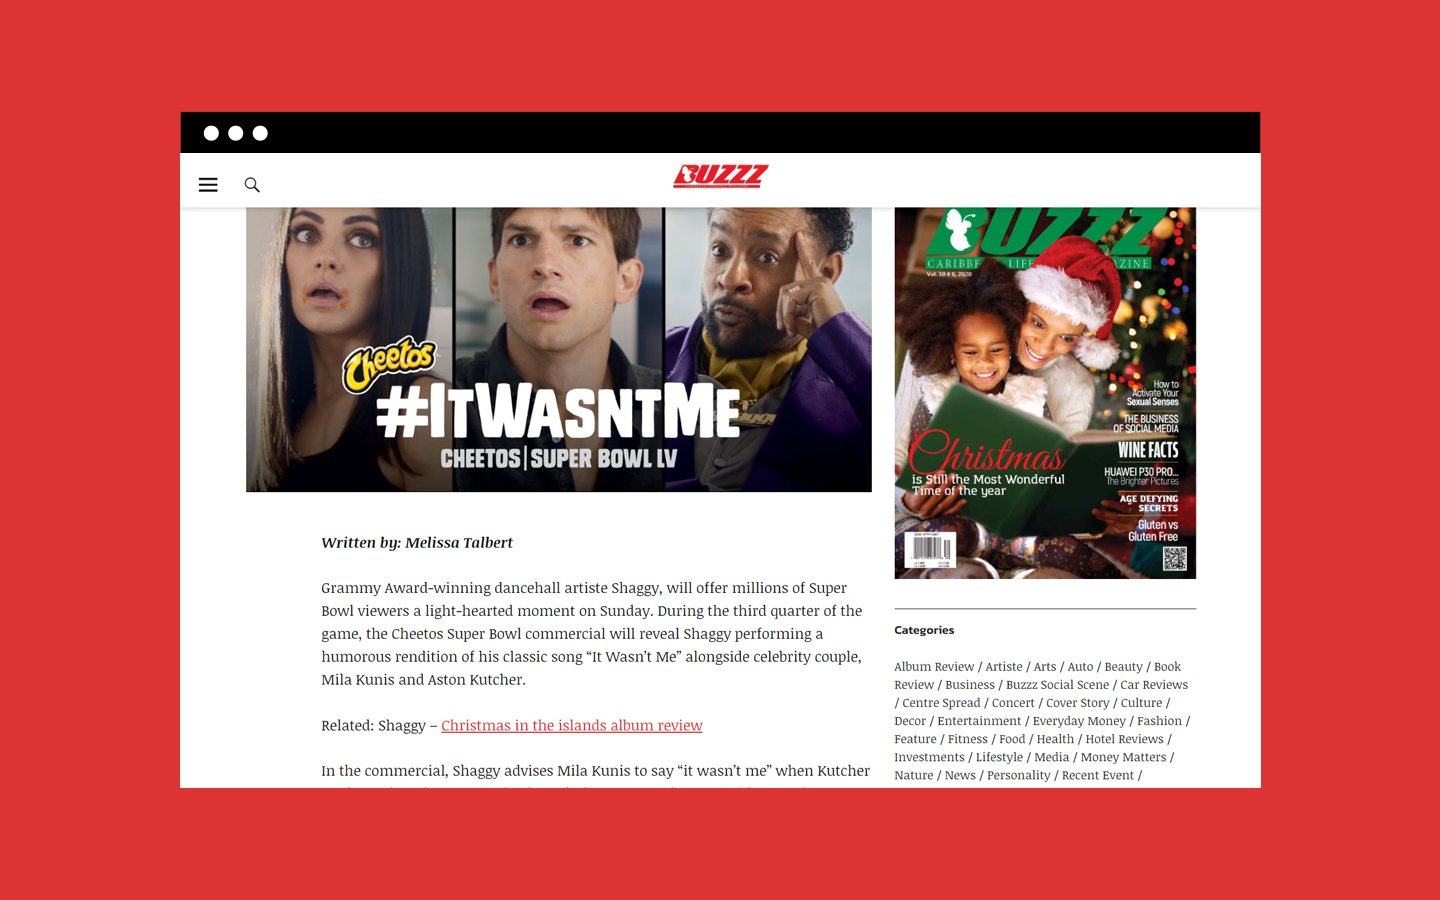 Single article layout on Buzzz's website